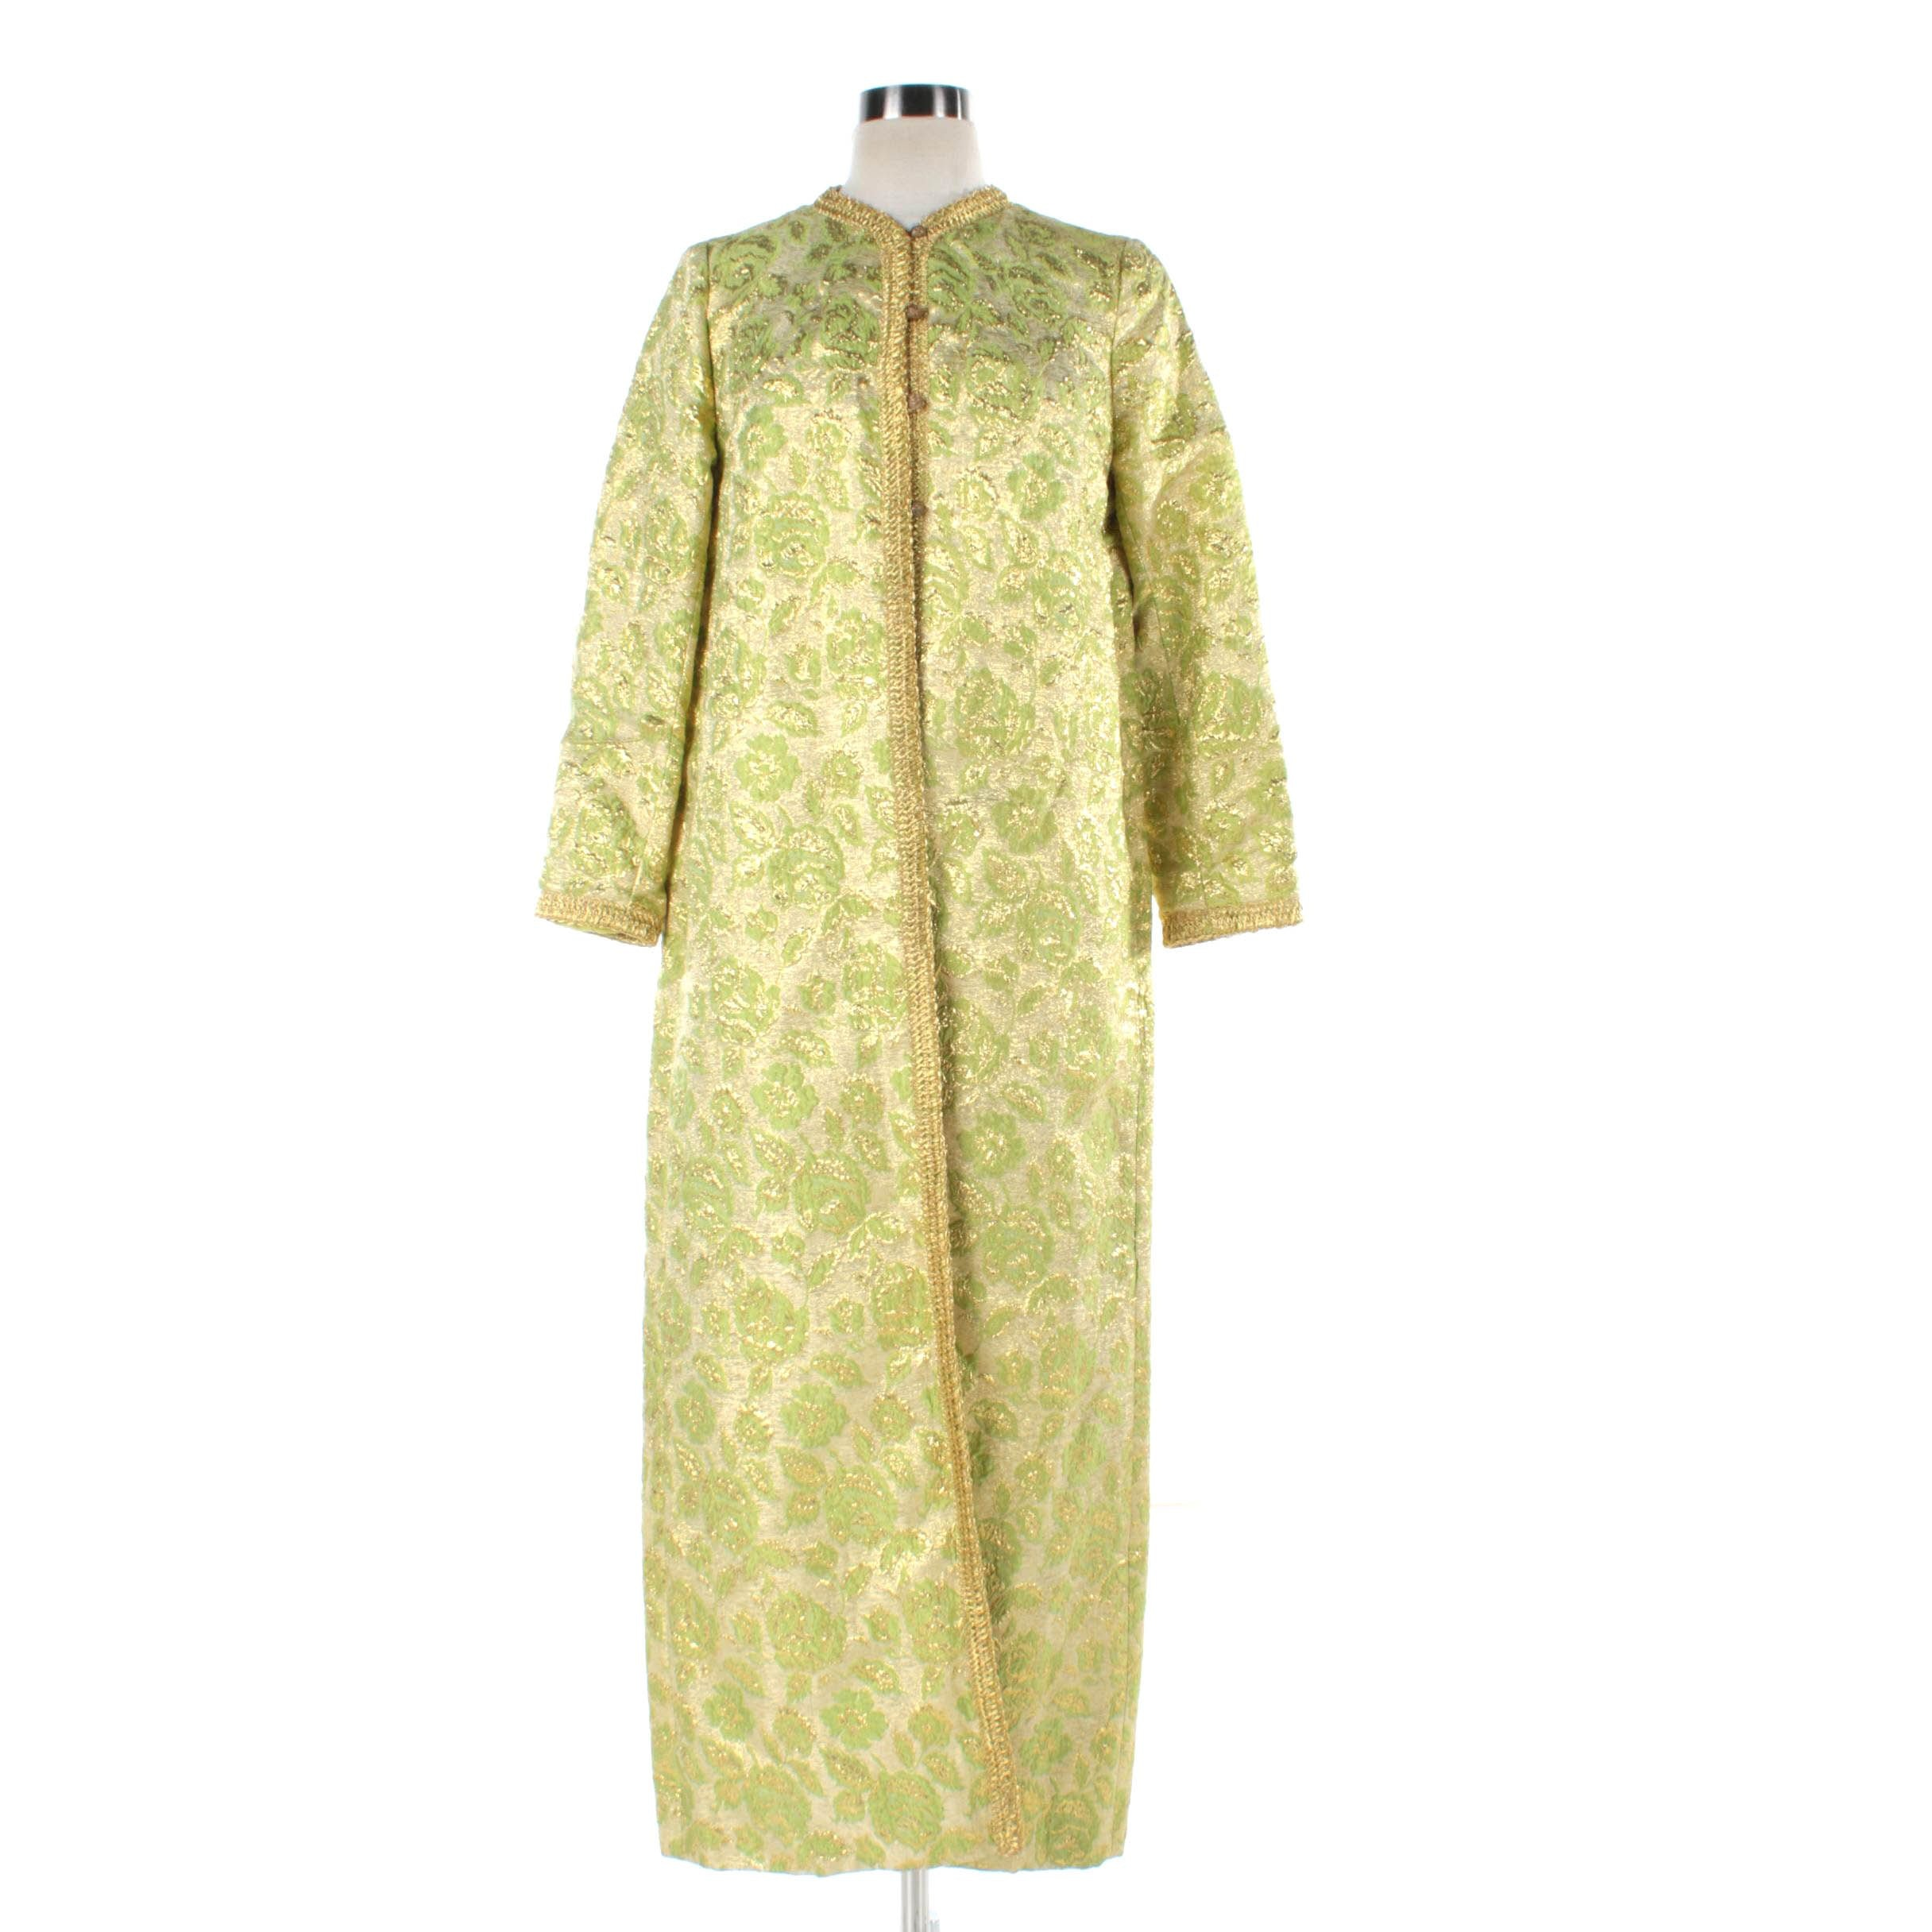 Women's Vintage Asian Inspired Imperial Brocade Robe